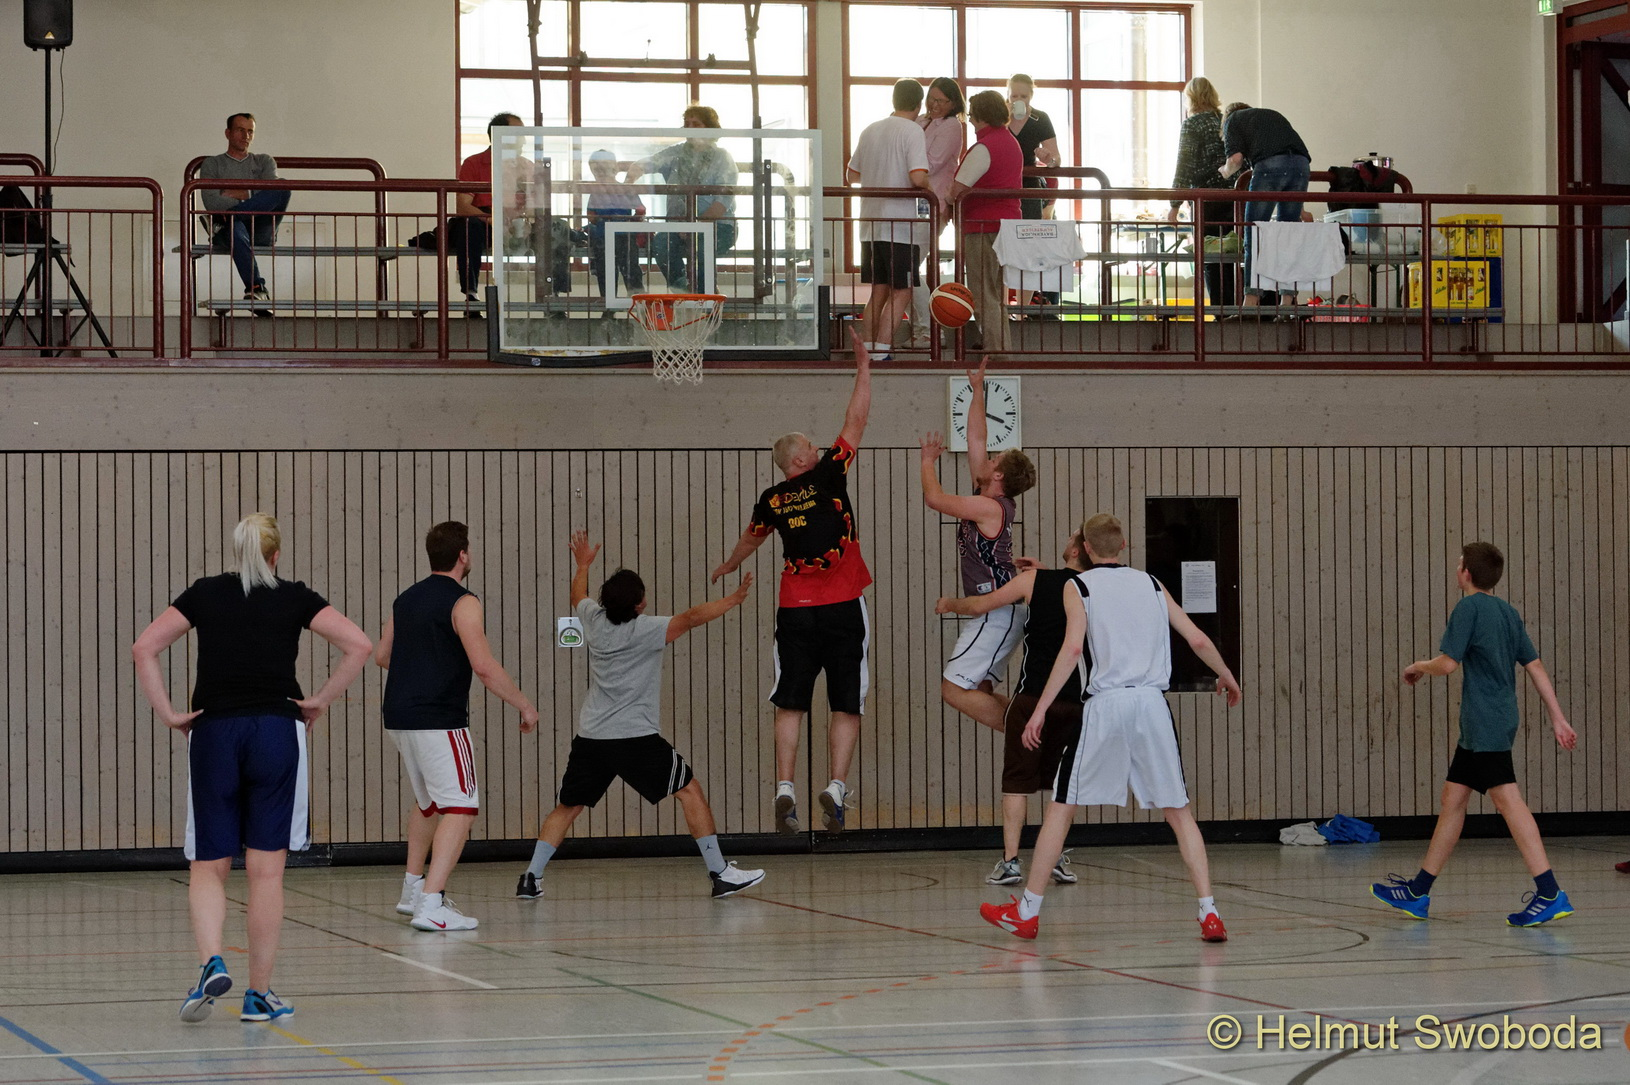 d170402-155959600-100-basketball_weilheim-mixed-turnier_33657318902_o